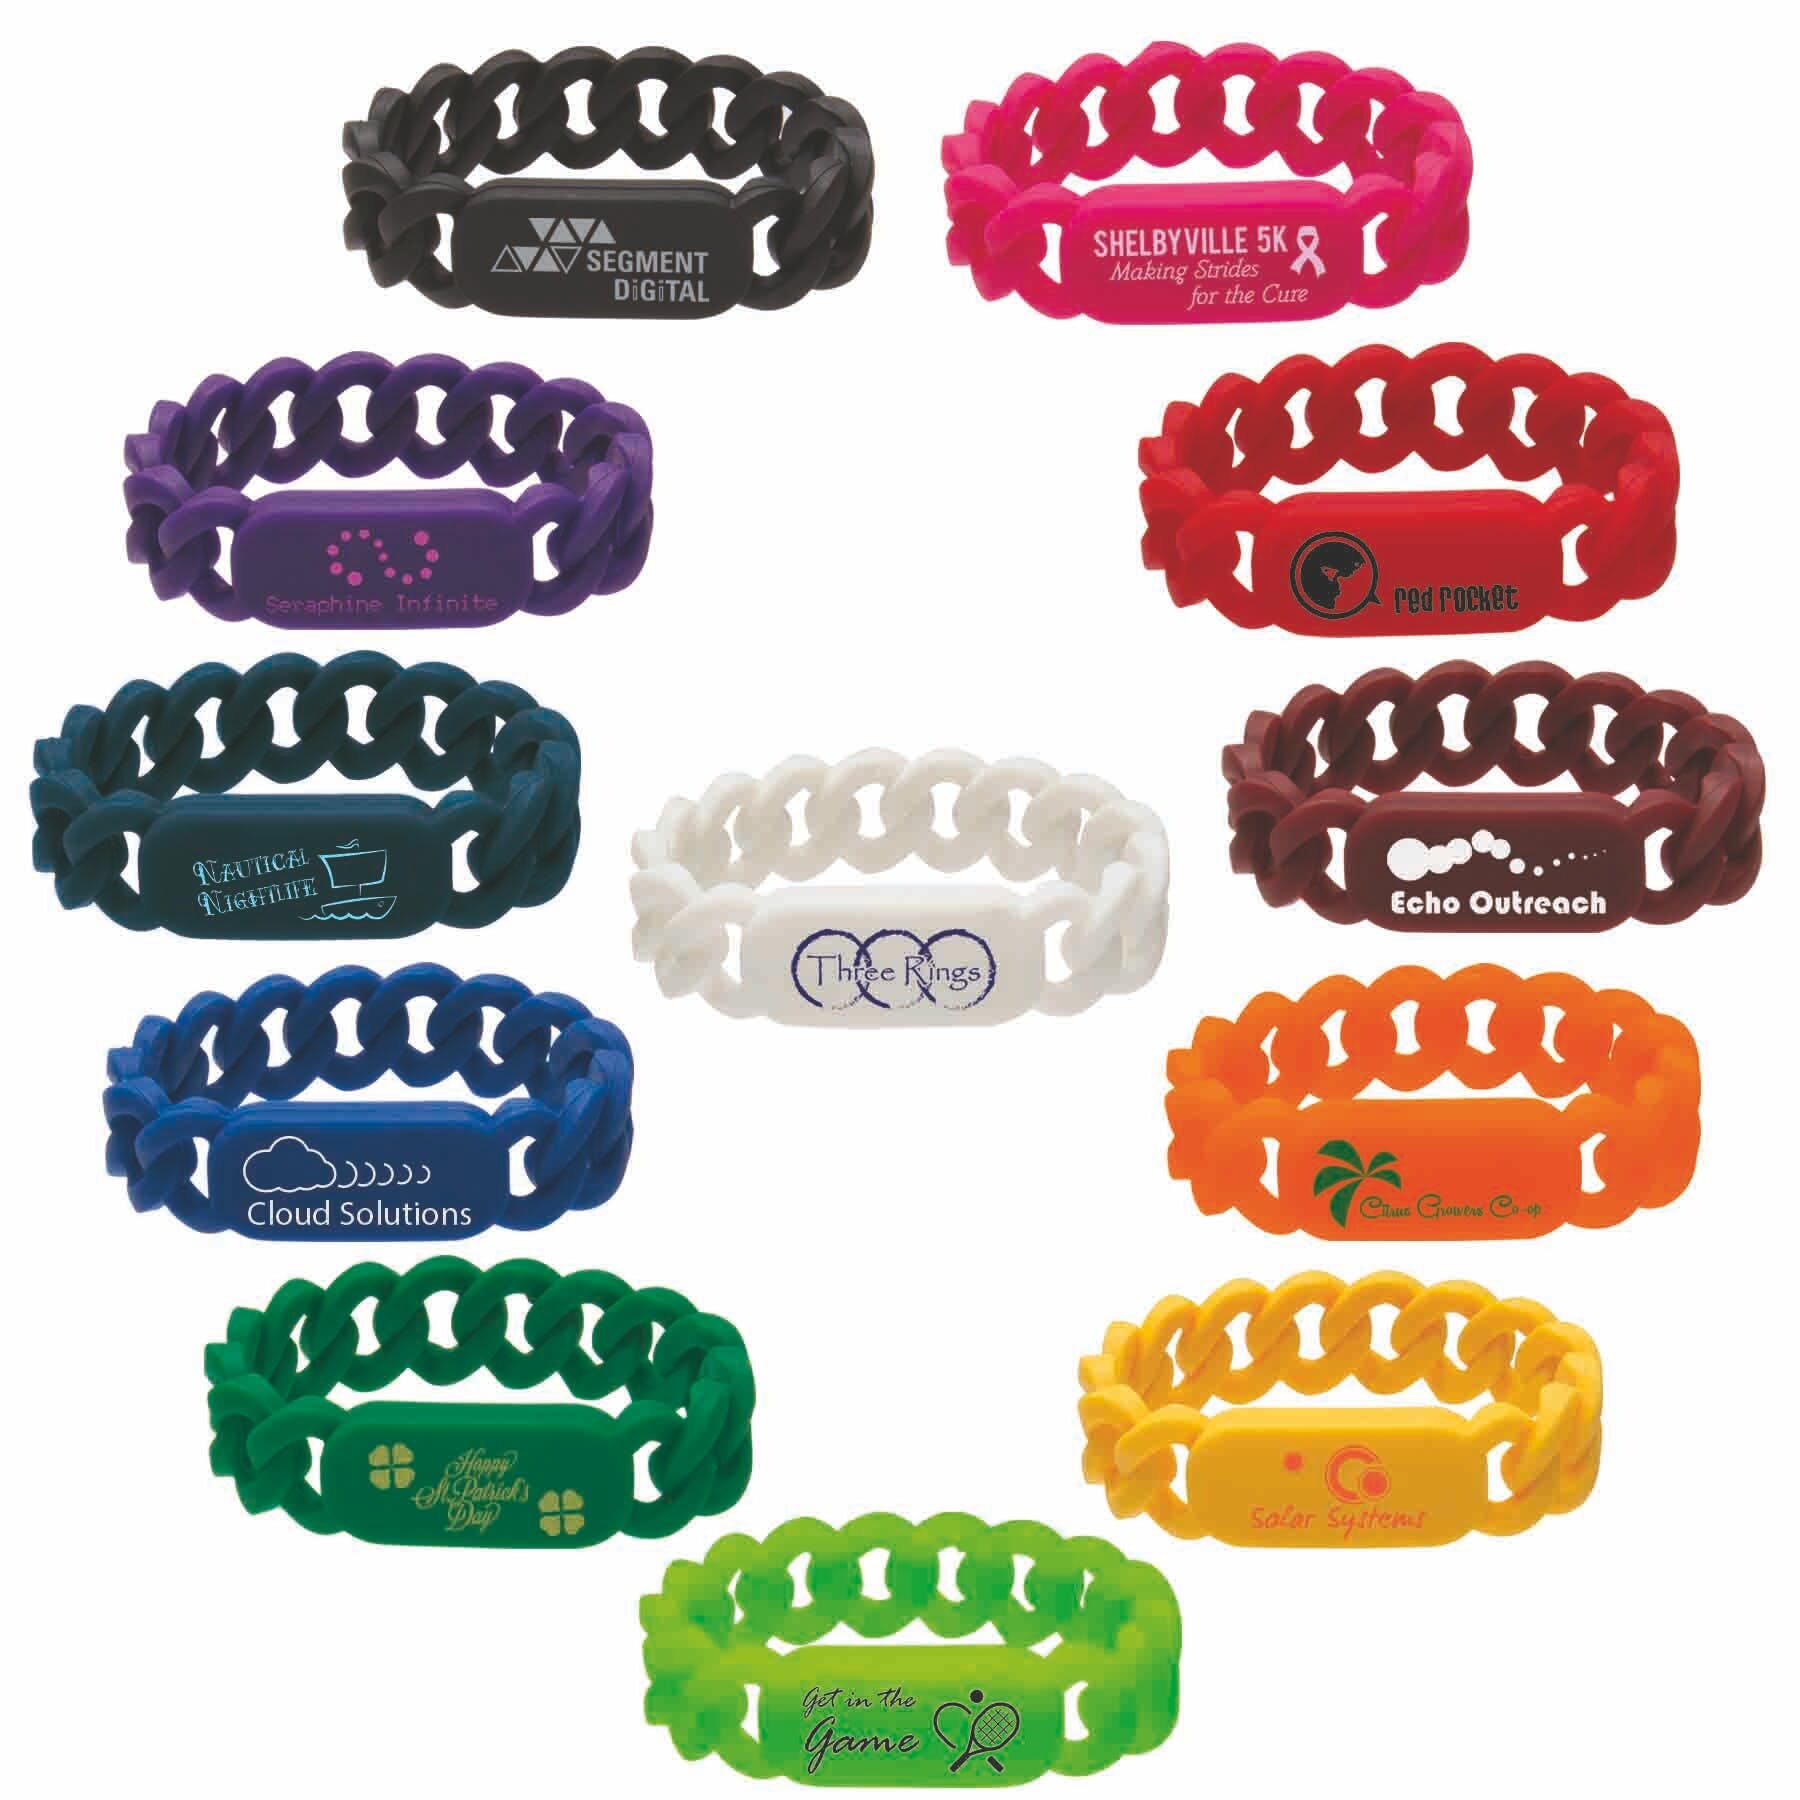 Link Wristband (Item # UFHNS-JKXJL) Promotional wristband sold by InkEasy